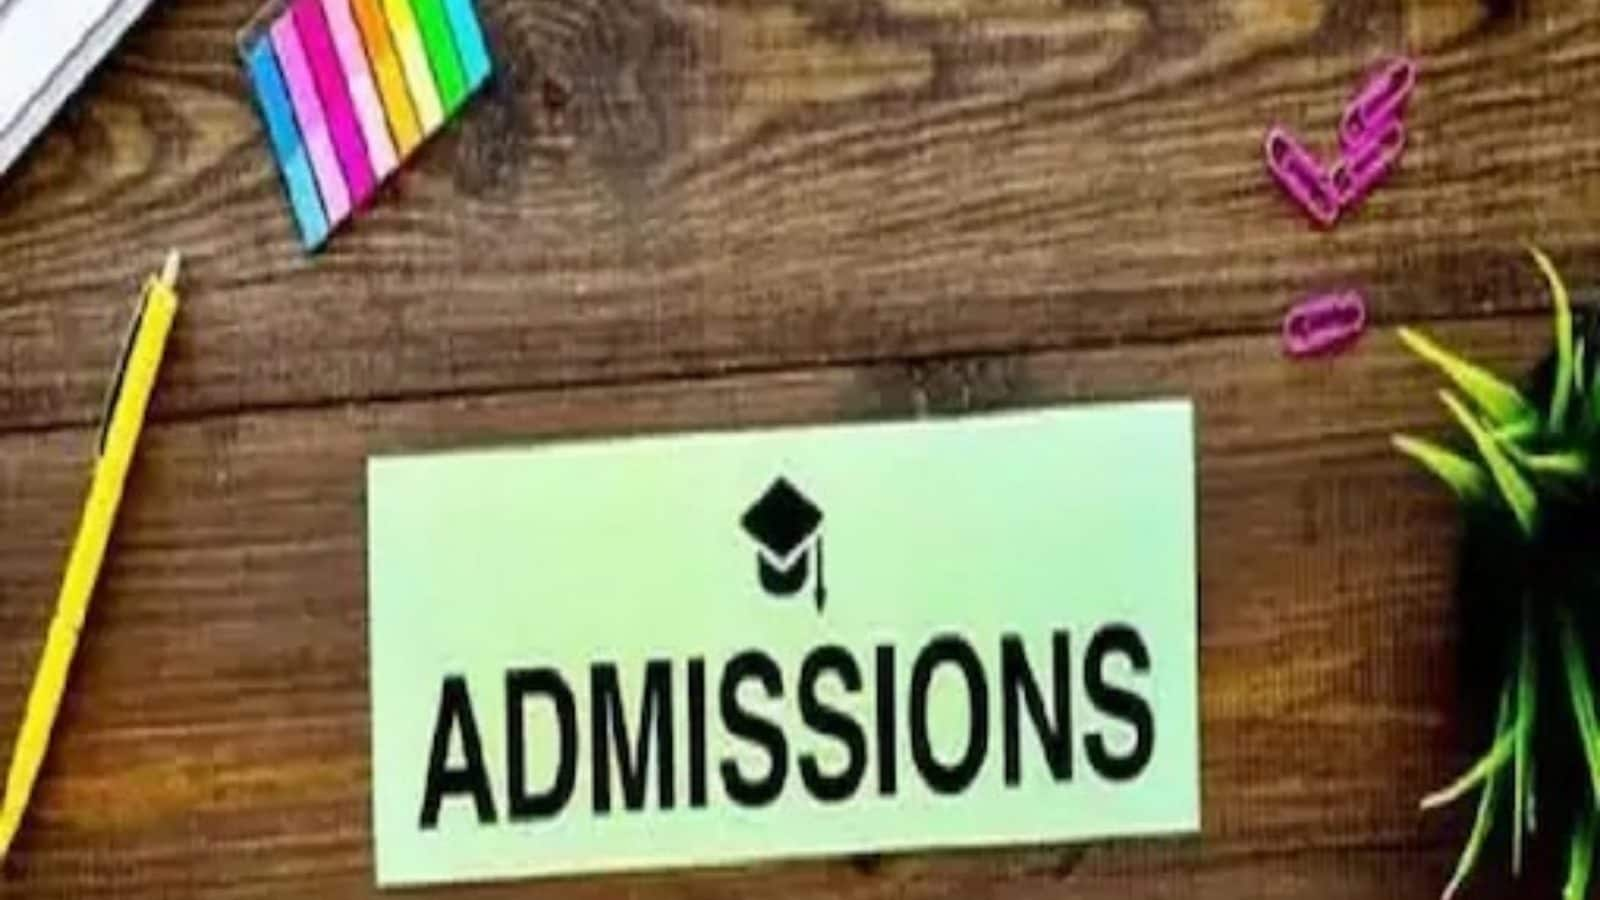 BSEB Releases Third Merit List For Bihar Inter Admission 2021, Check Details